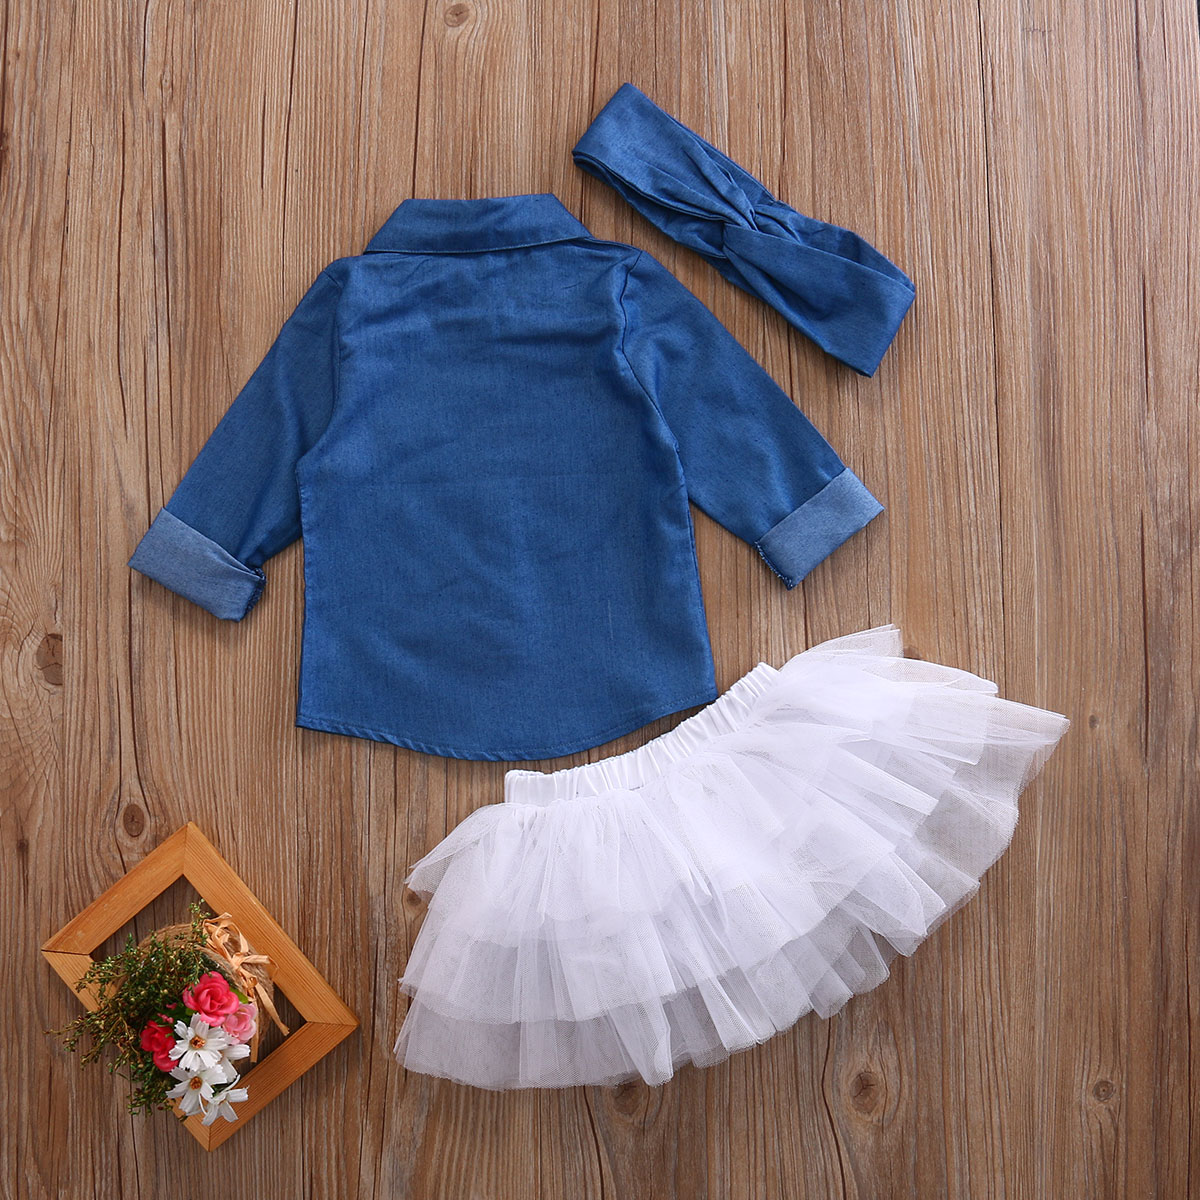 Girls-Tops-Shirt-Tutu-Skirts-Ruffles-Cute-Party-3pcs-Outfits-Clothing-Set-Toddler-Kids-Baby-Girl-Clothes-Set-Denim-5